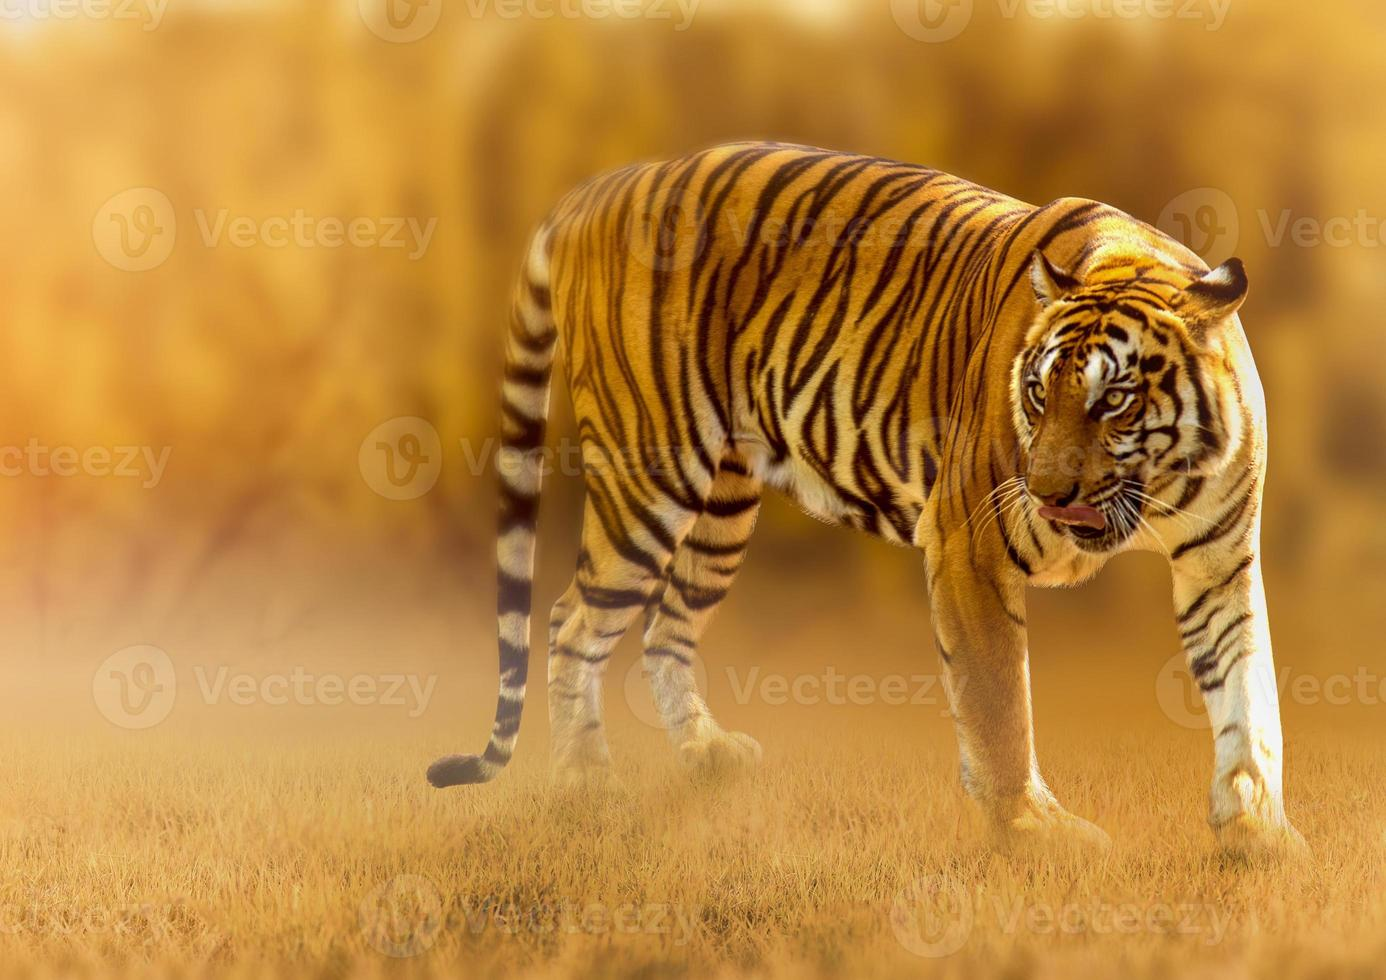 Tiger, walking in the golden light Is a wild animal hunting Summer in hot, dry areas and beautiful tiger structures photo